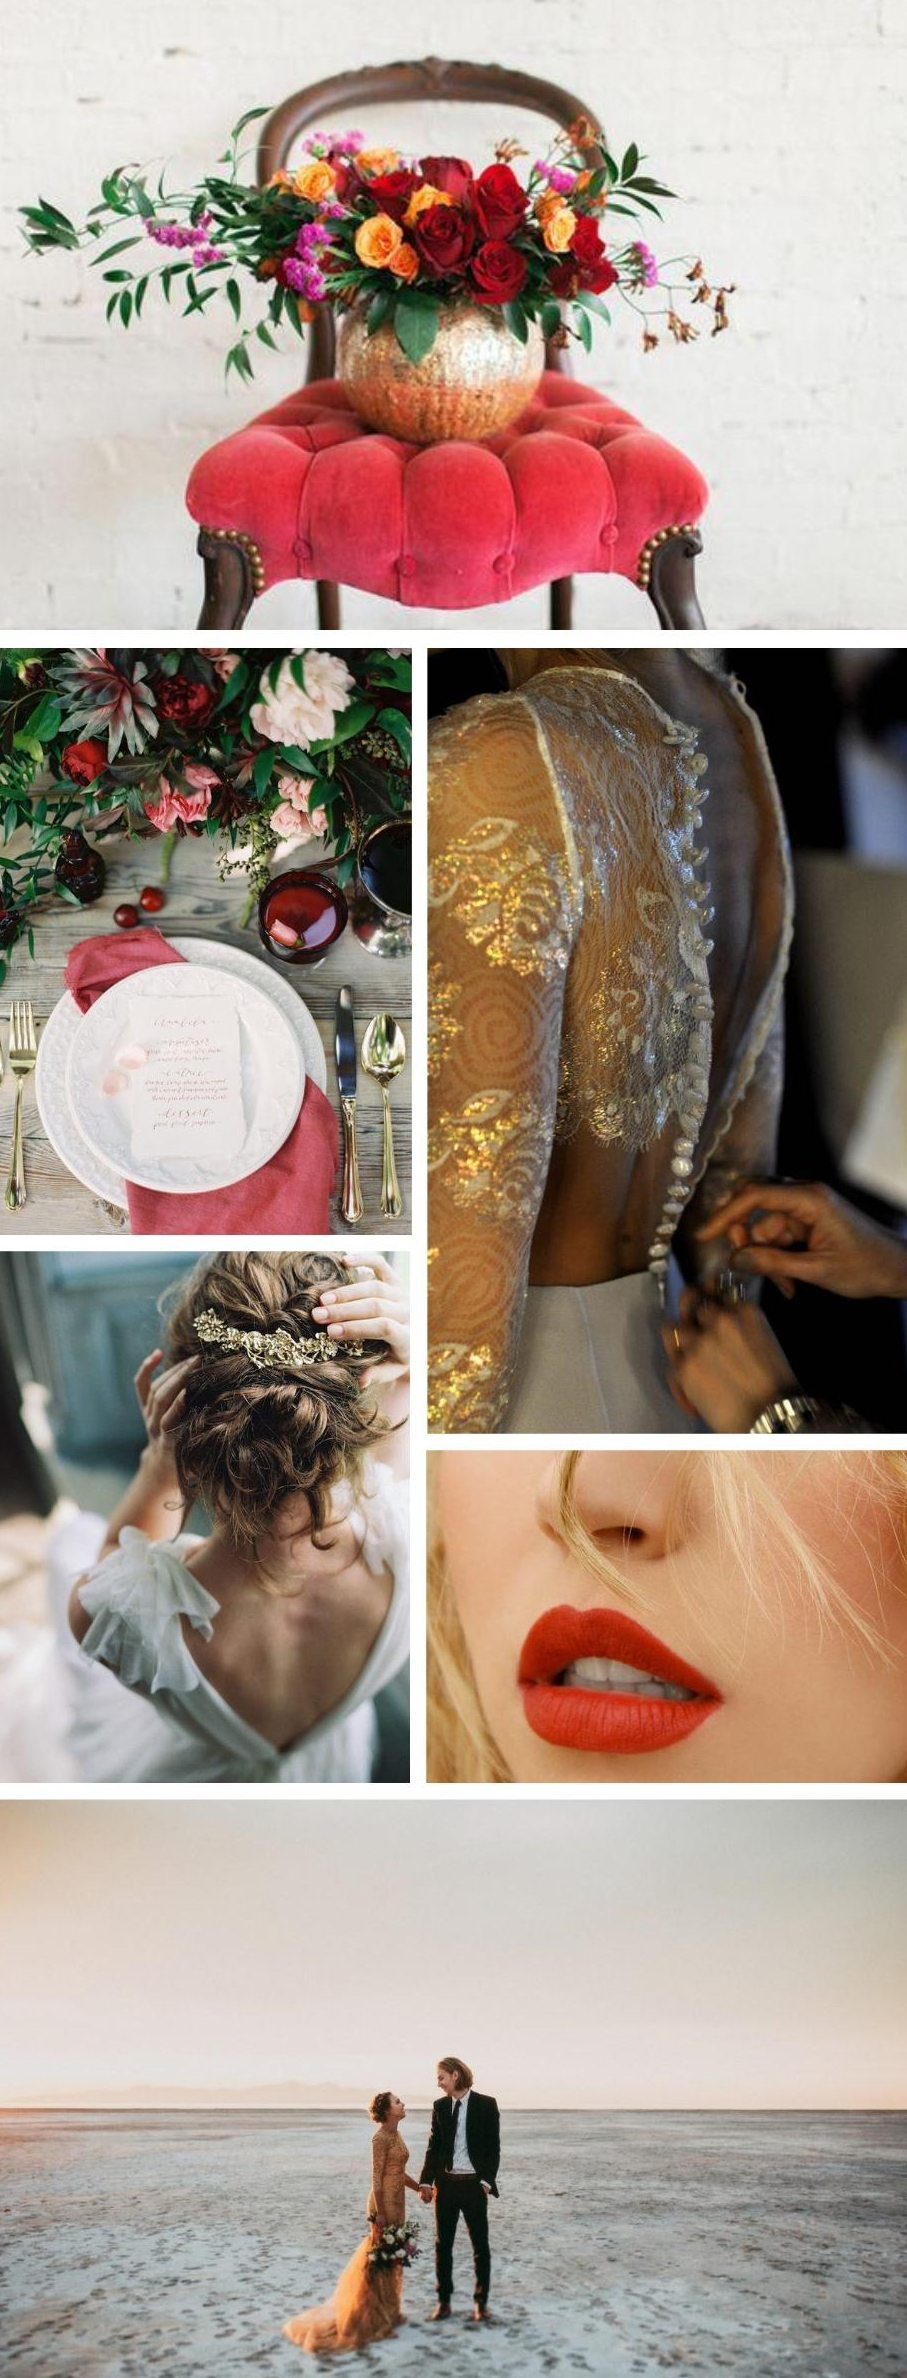 Flowers  // Table Setting  Lani Elias  // Gold dress // Hair with gold  Liv Hart  // Lips  // Couple  India Earl